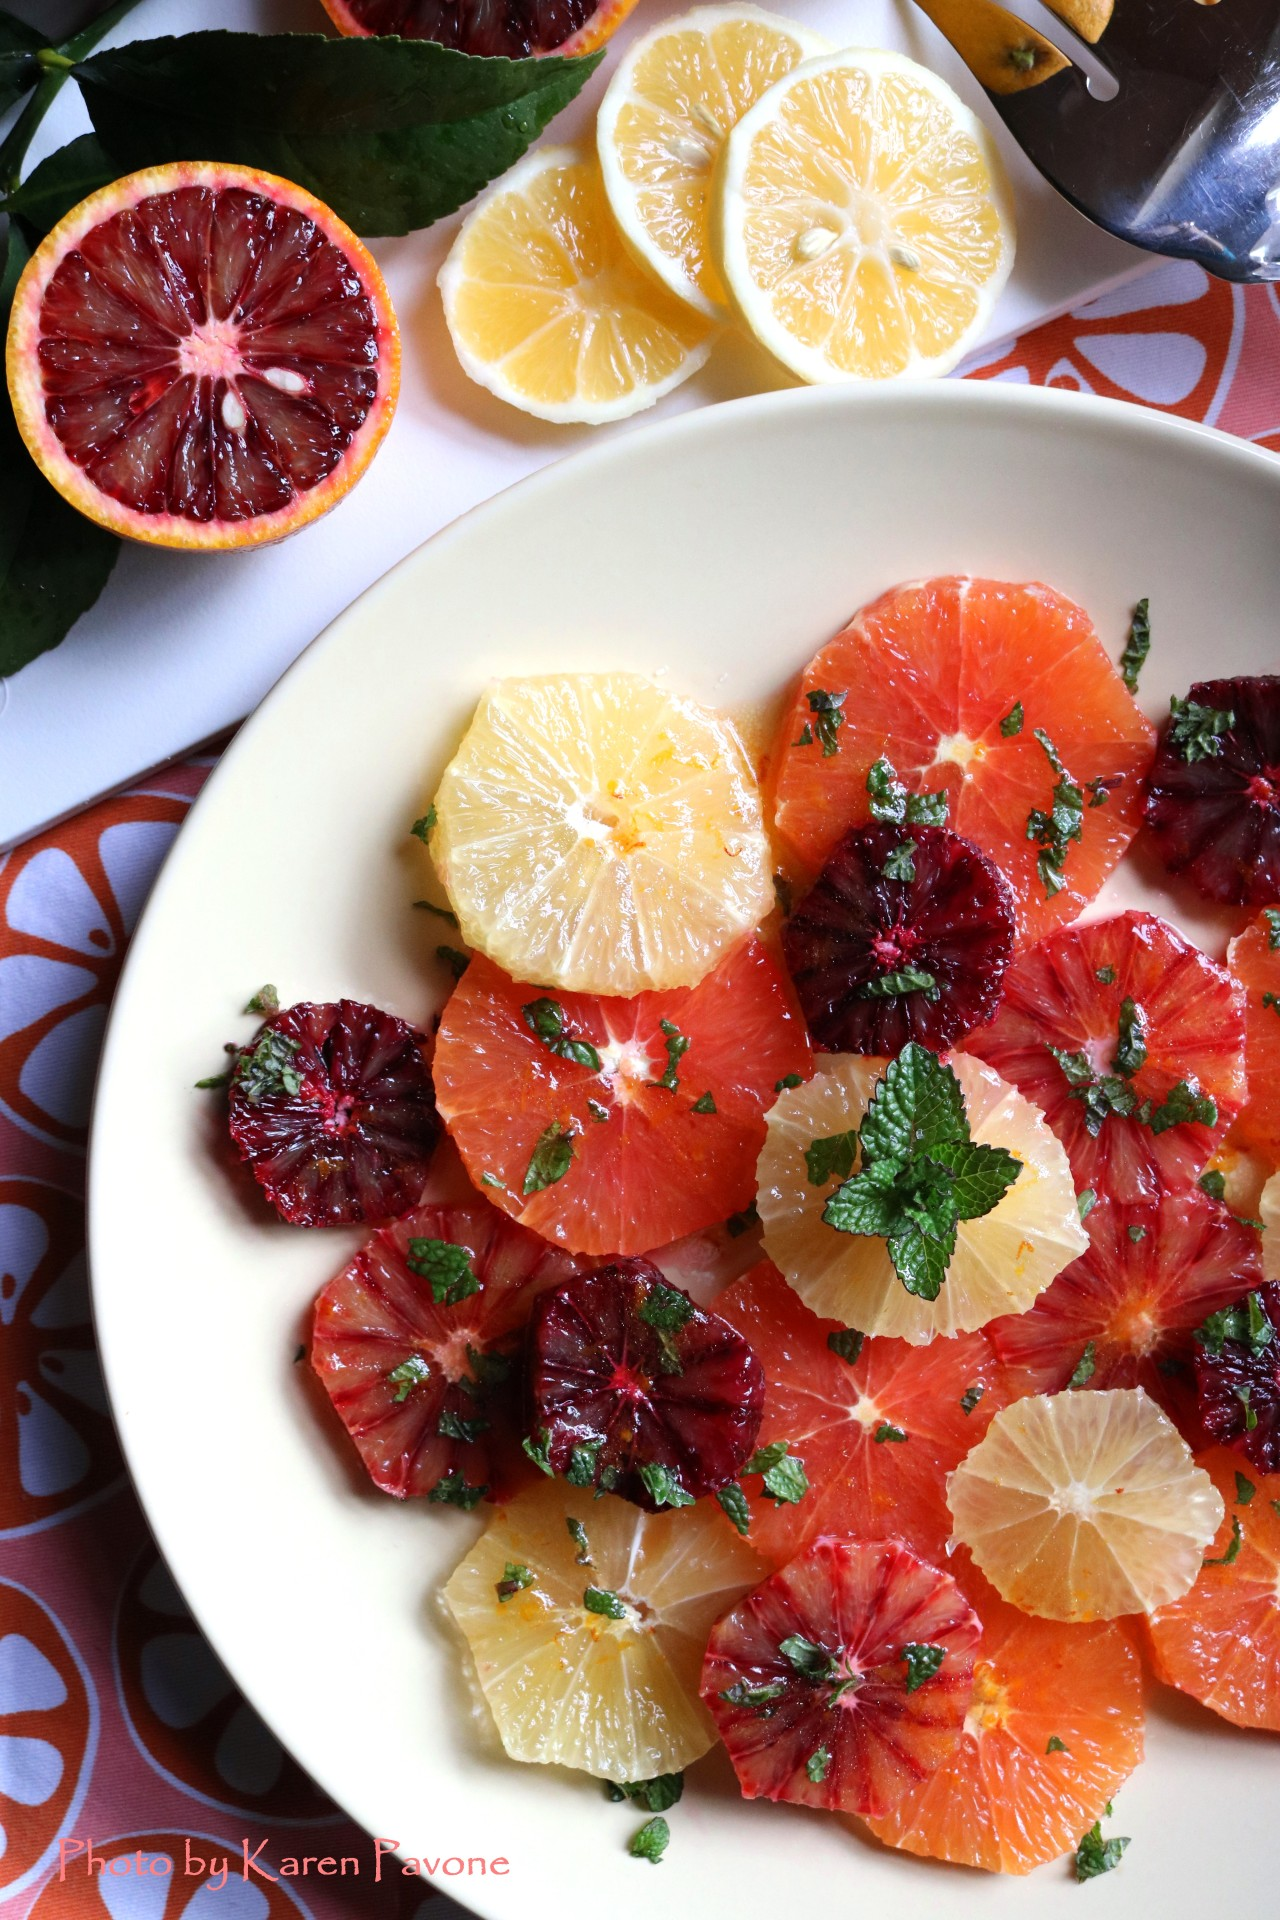 In Season: Winter Citrus Salad with fresh mint